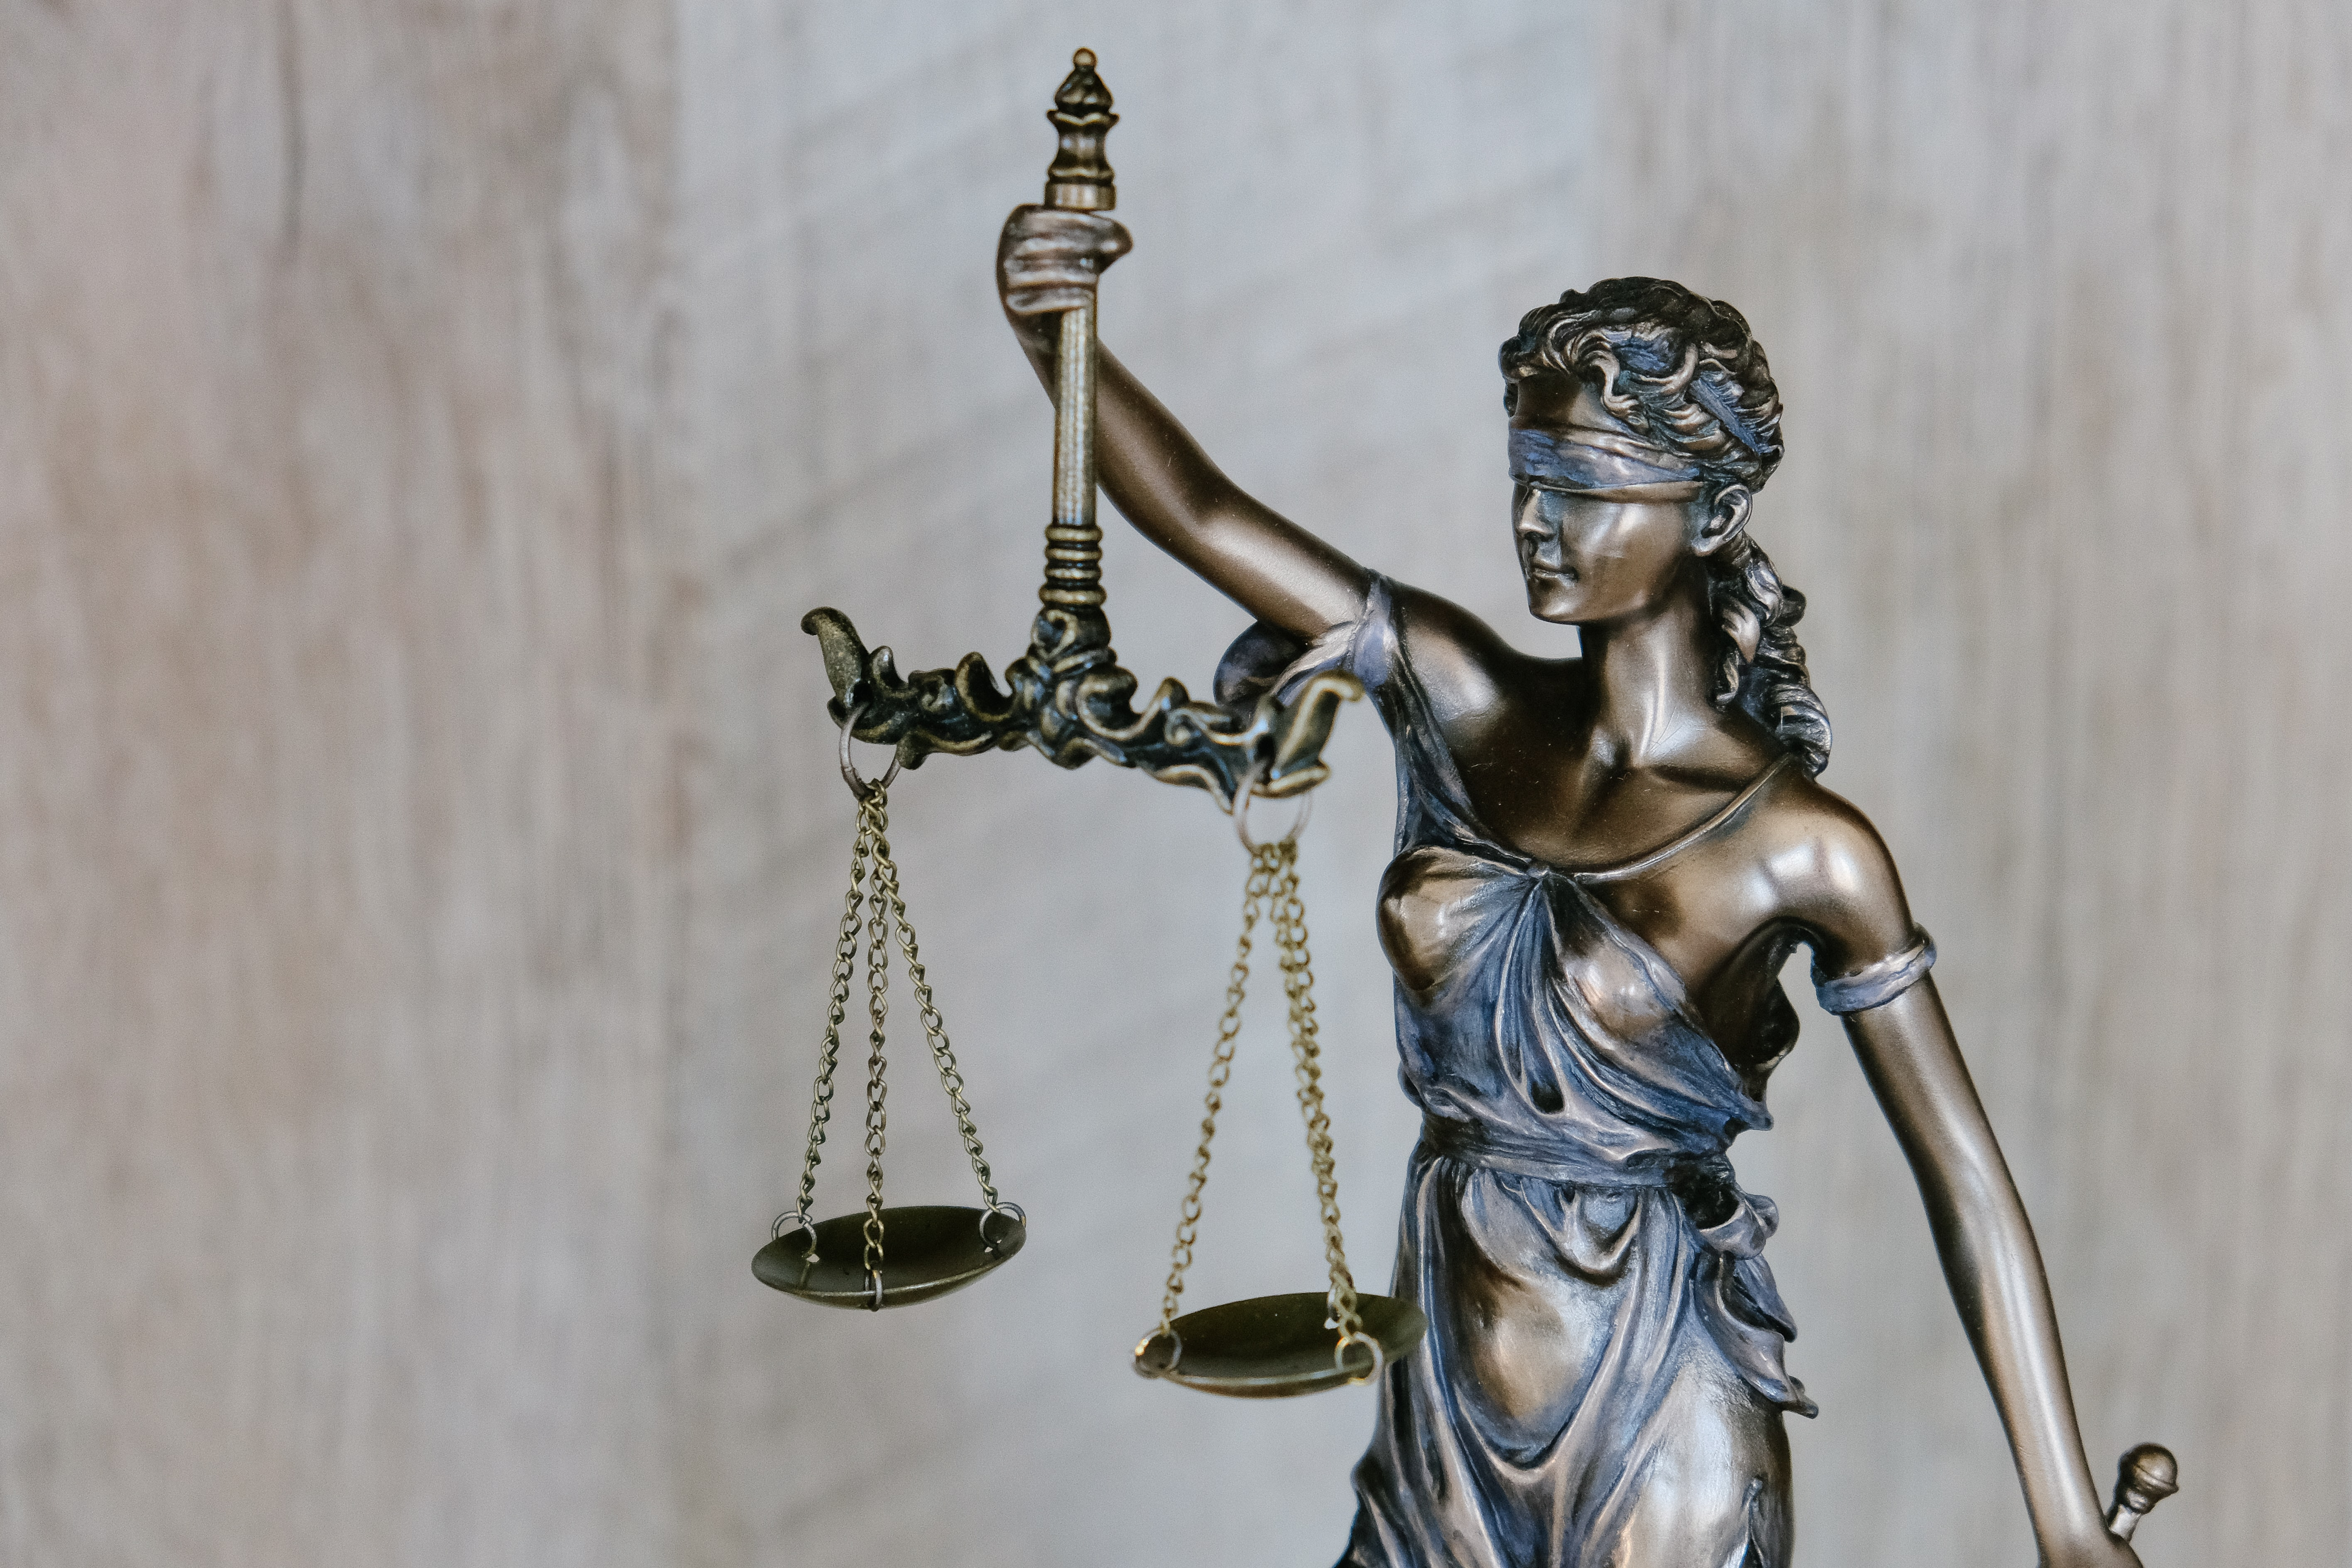 Lady justice stature.